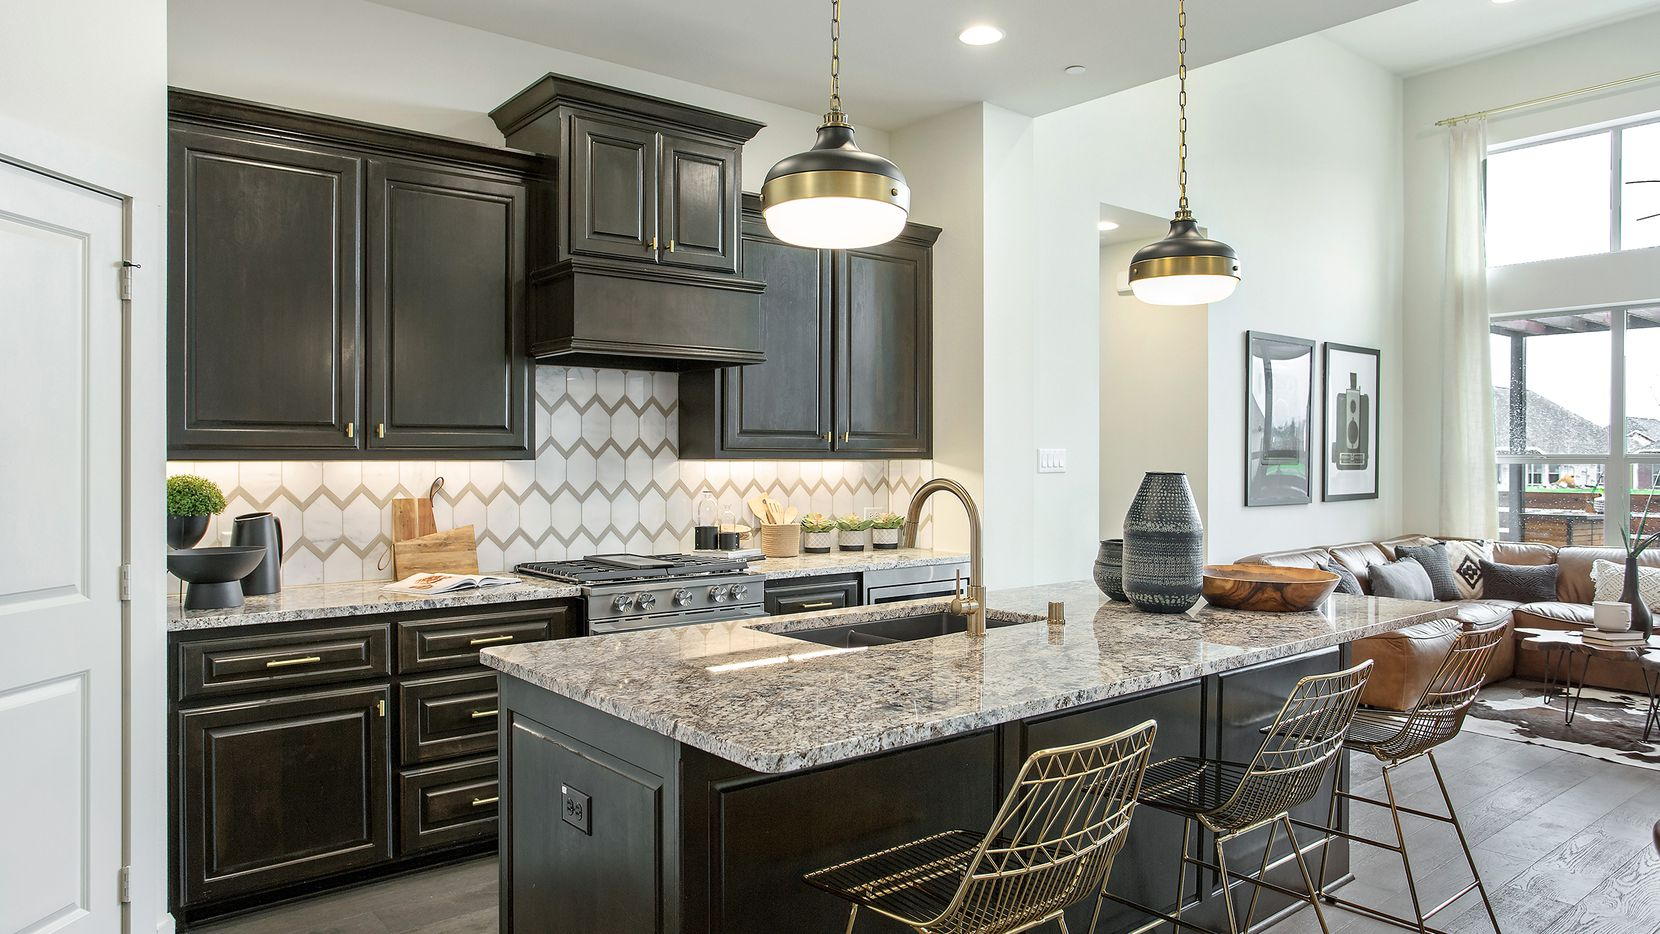 Grenadier Homes' new model in Garland's Riverset community is at 1706 Greatfield Drive.